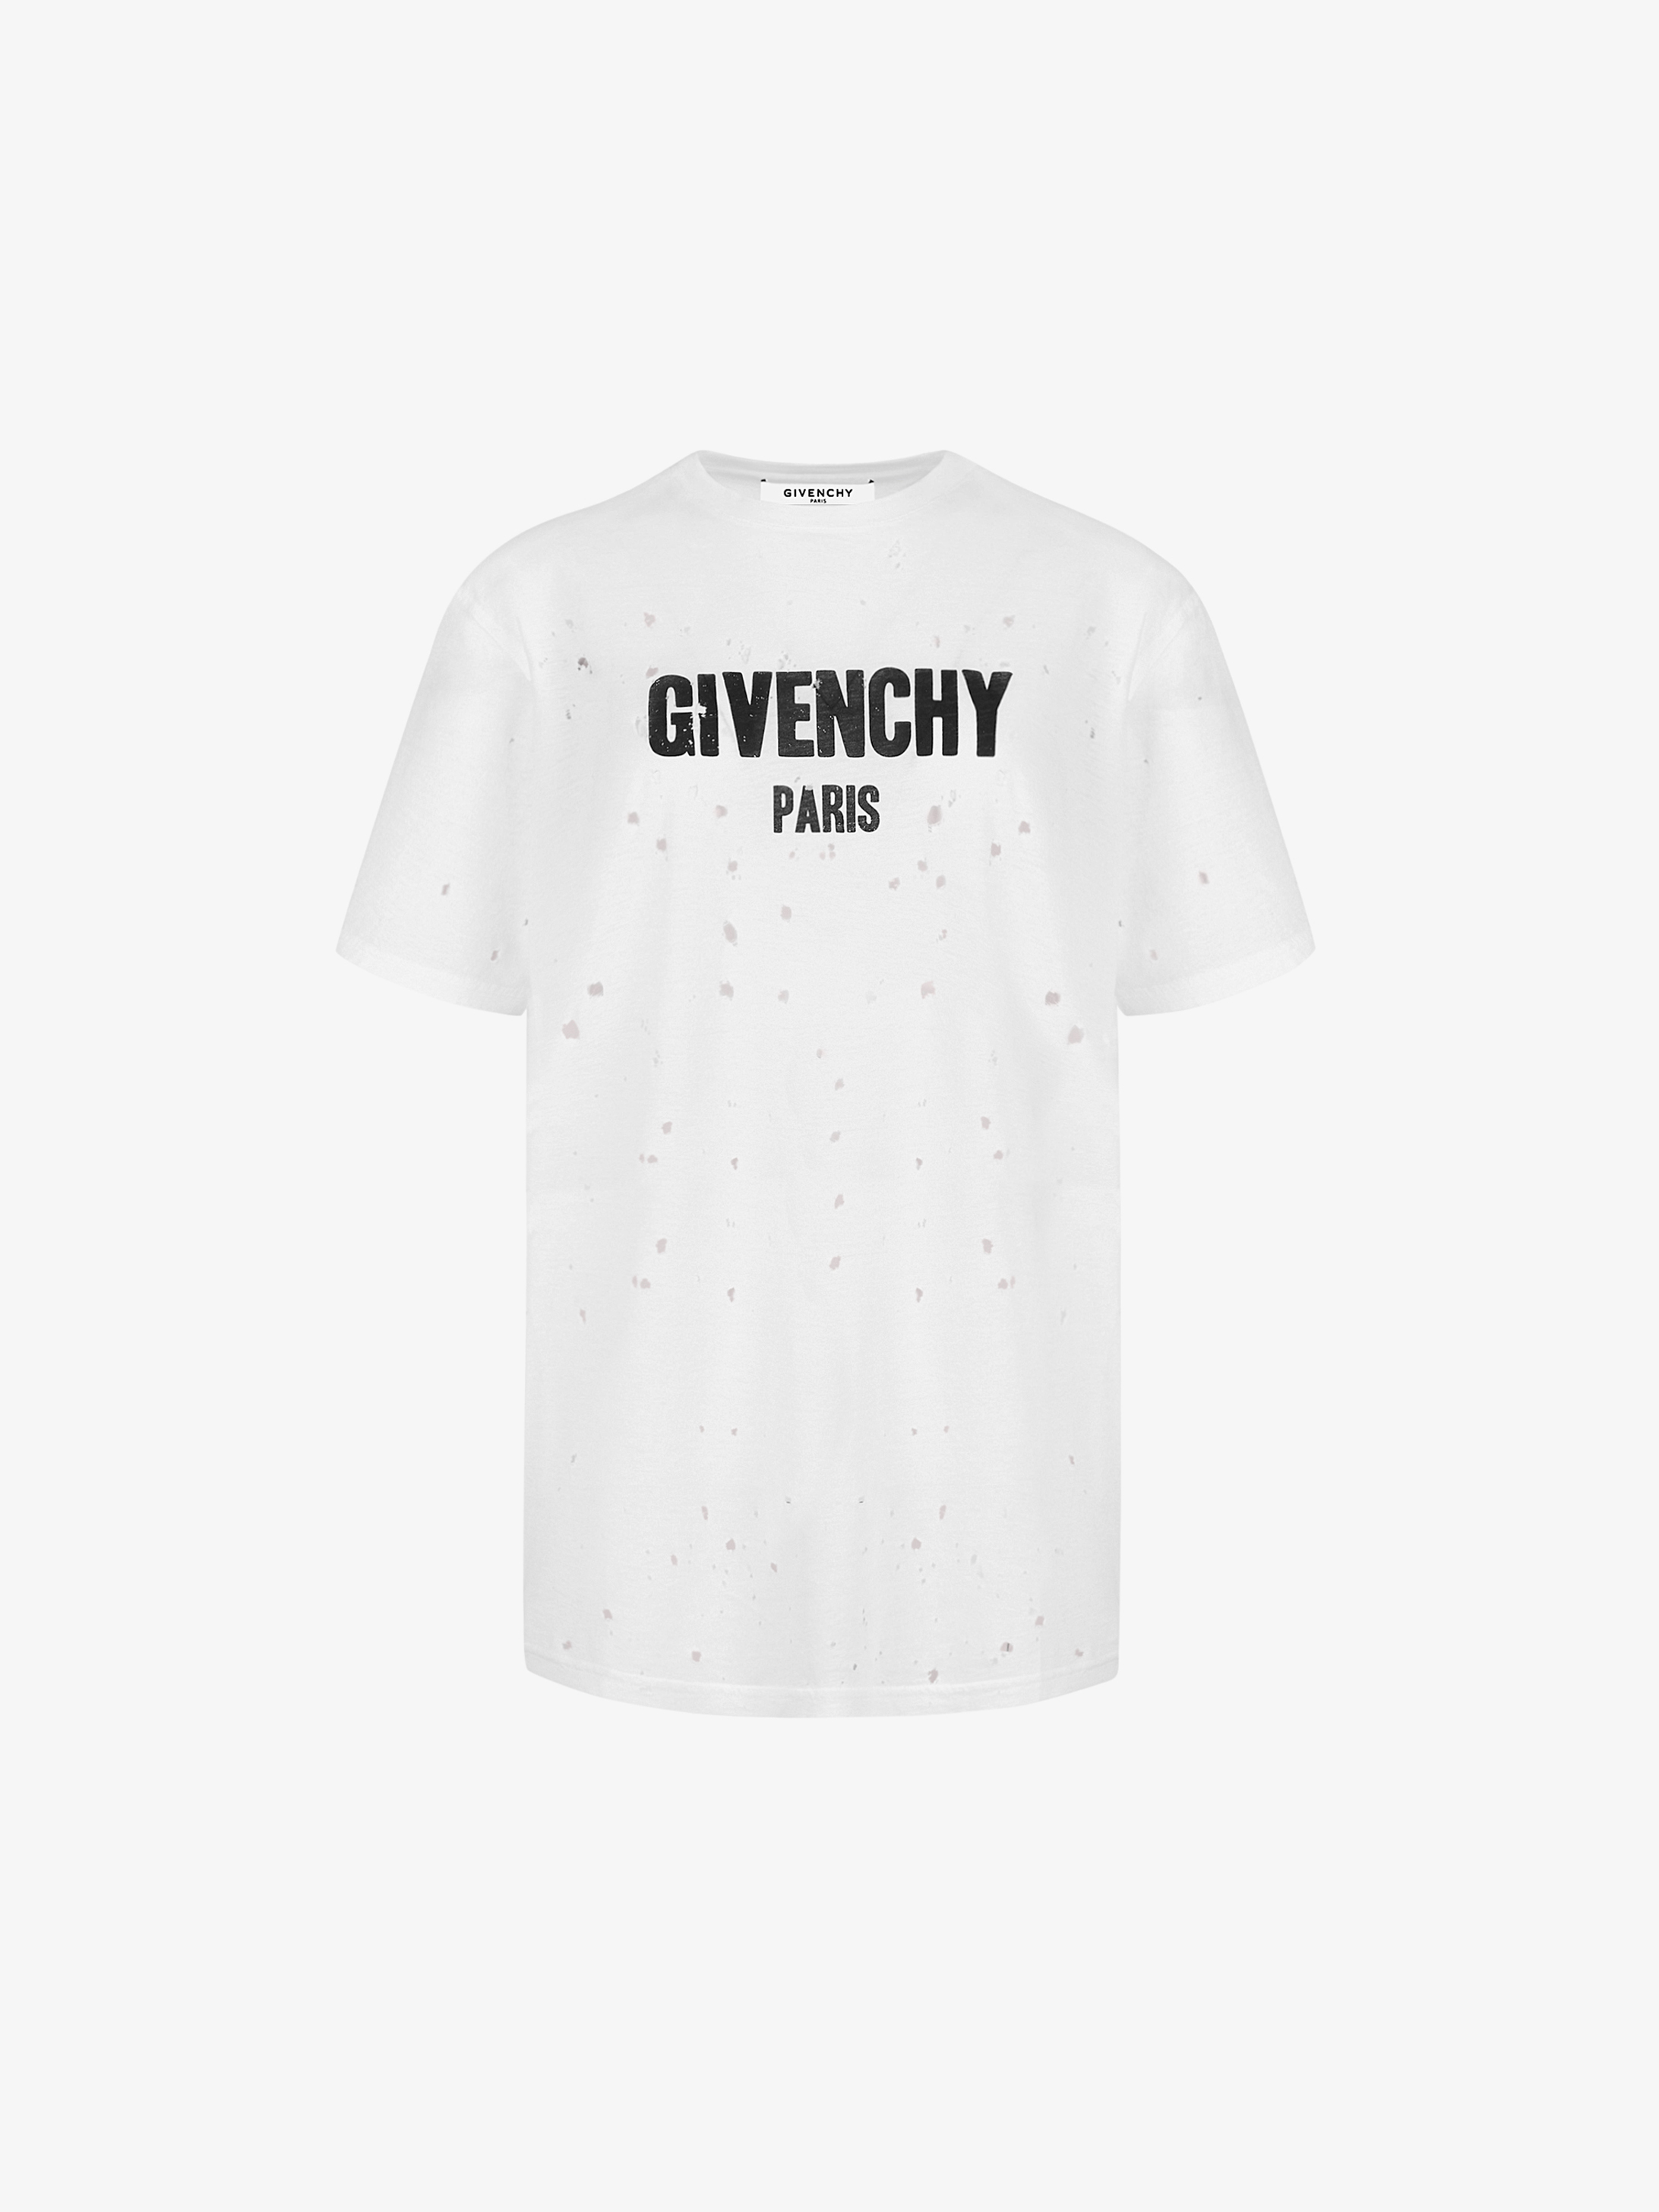 GIVENCHY PARIS destroyed t-shirt